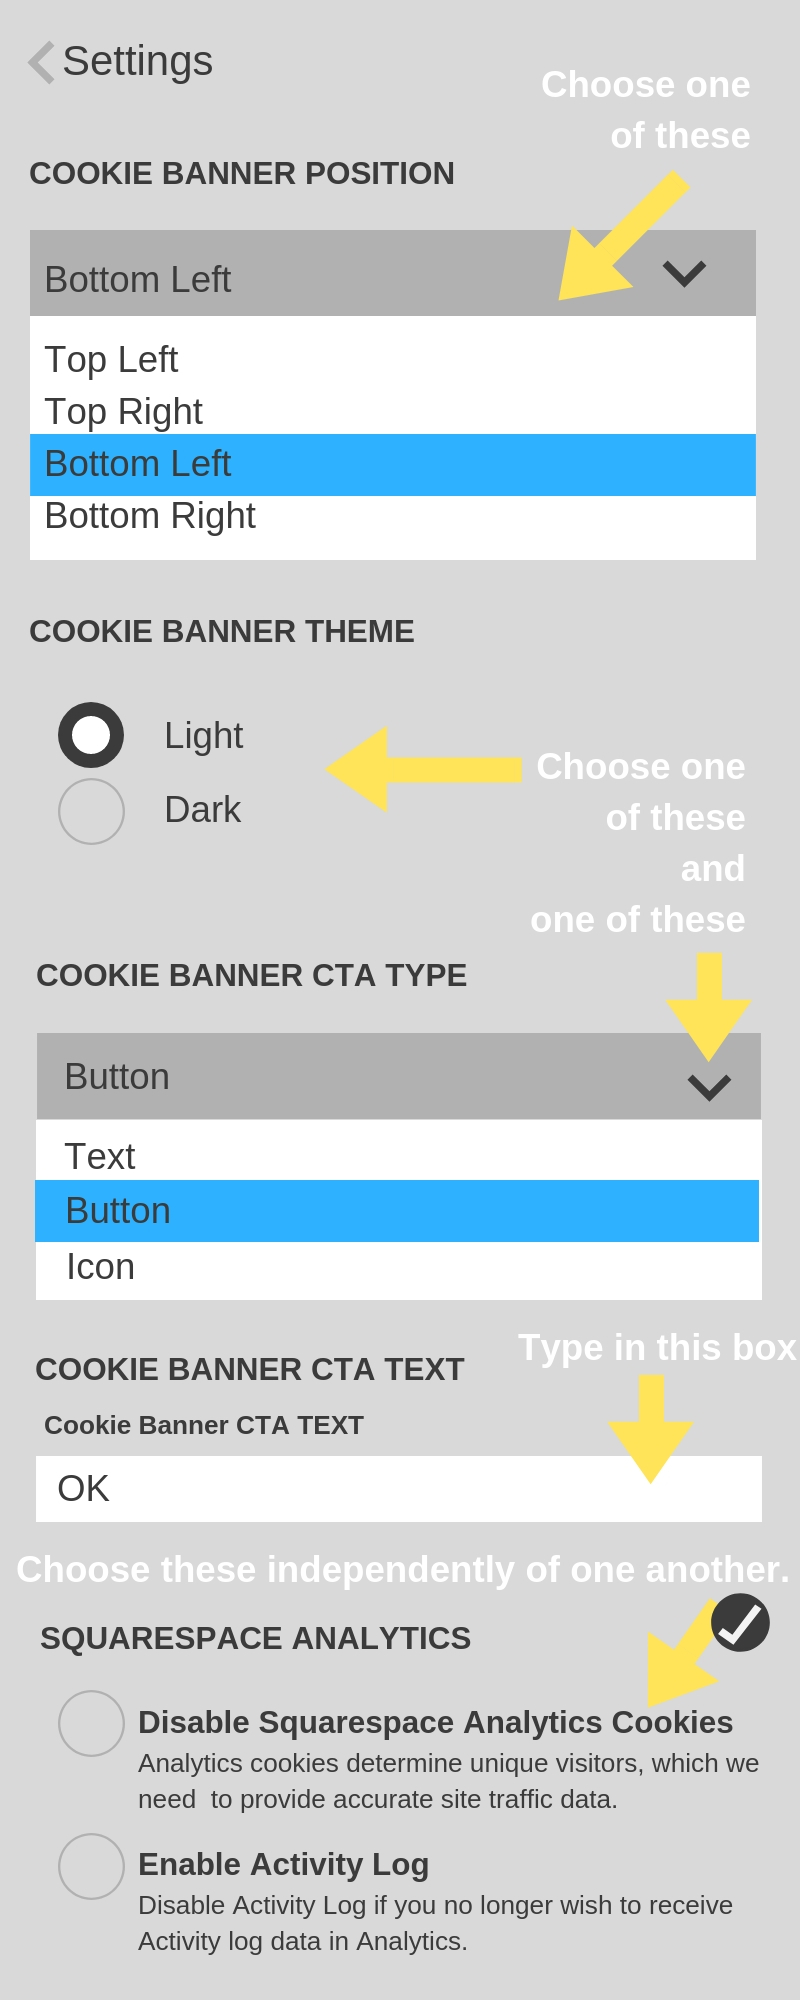 How to finish enabling a cookie banner on a Squarespace website.